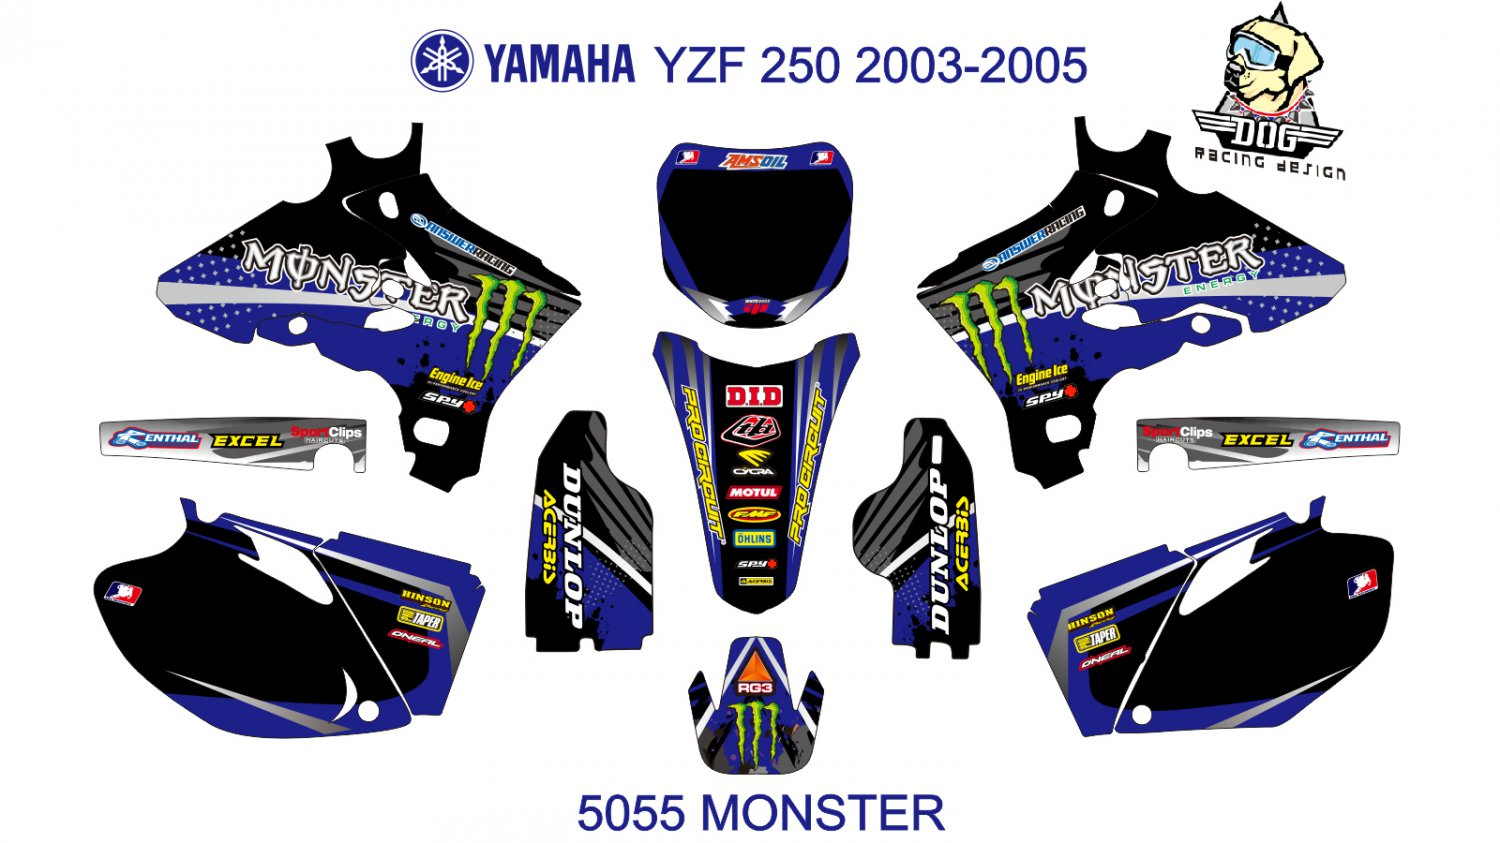 YAMAHA YZF 250 2003-2005 GRAPHIC DECAL KIT CODE.5055